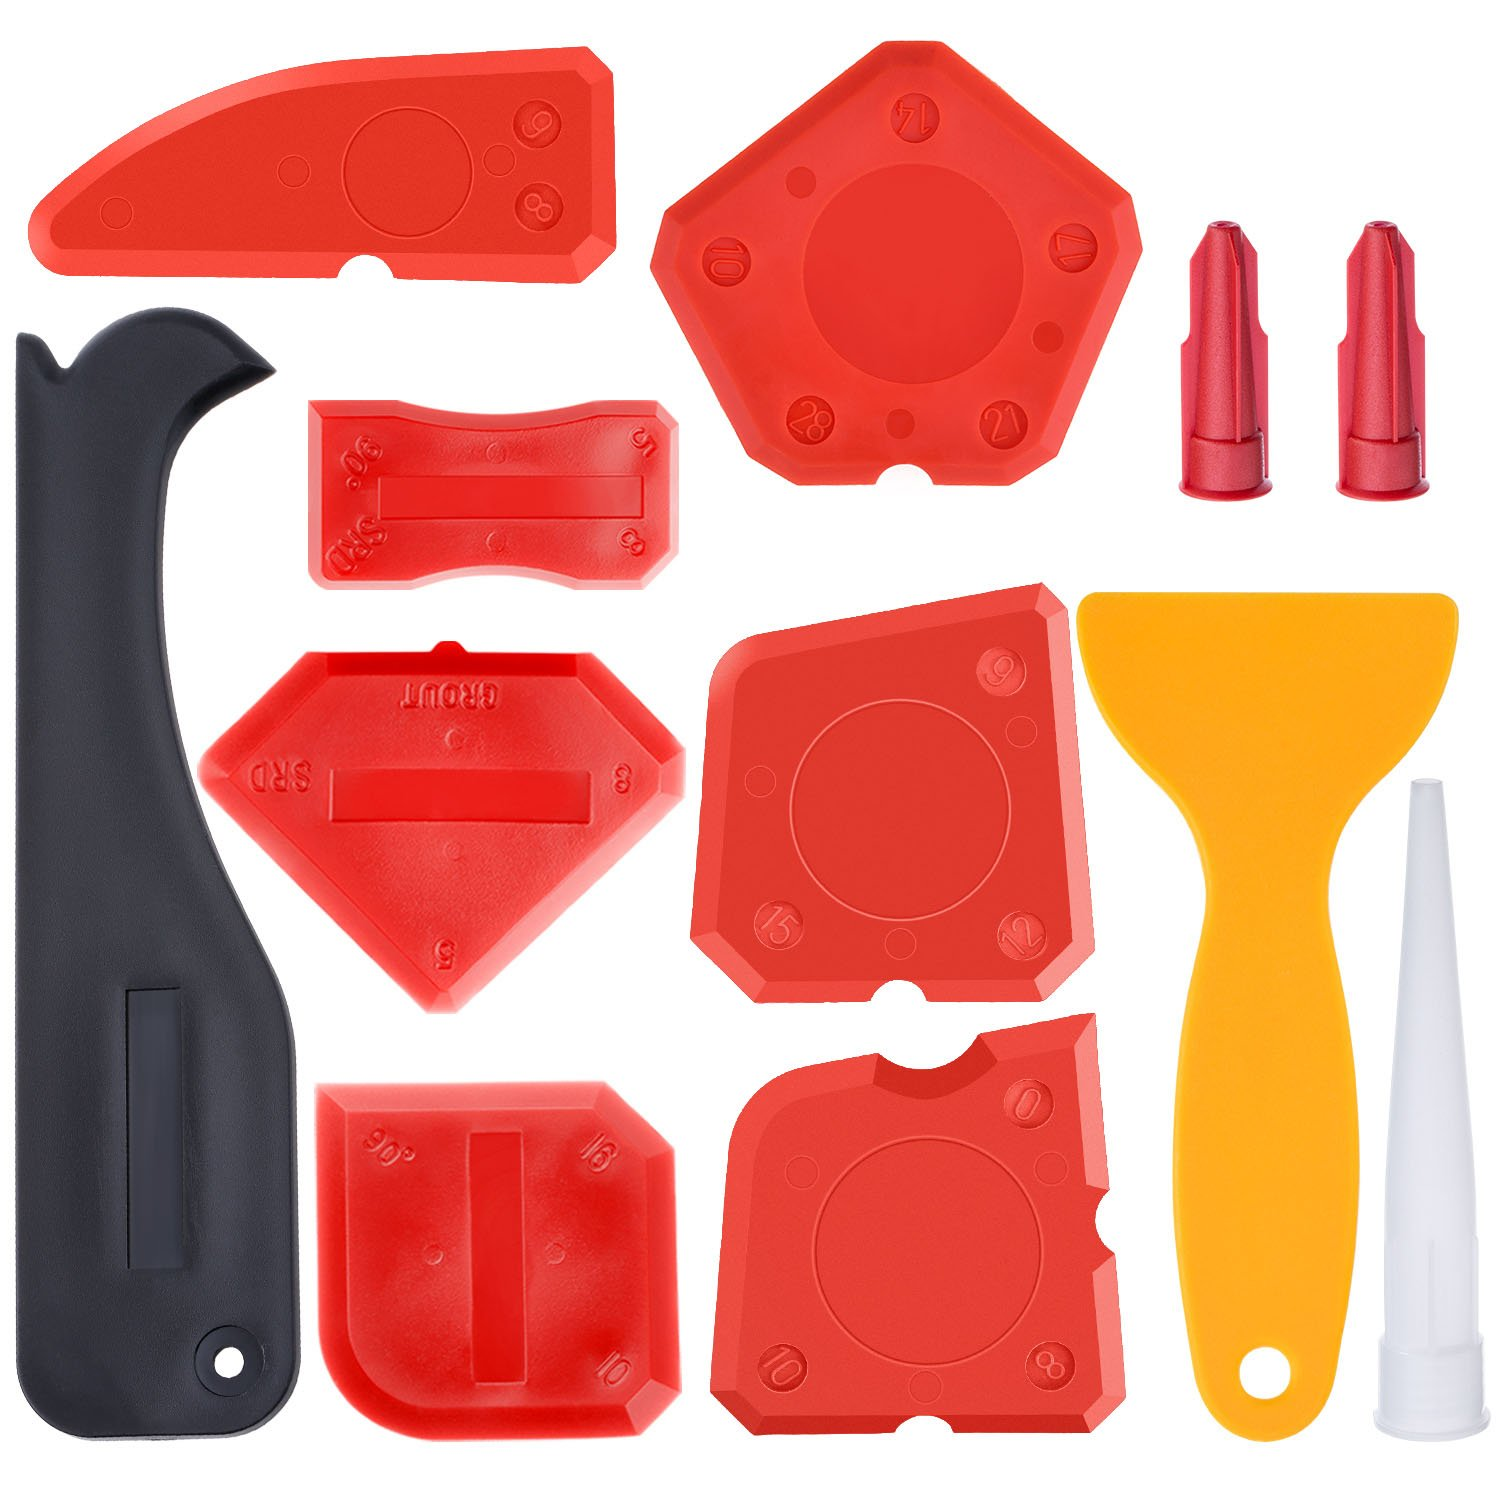 Hestya 12 Pieces Caulking Tool Kit Silicone Sealant Finishing Tool Grout Scraper Caulk Remover and Caulk Nozzle and Caulk Caps (Red)